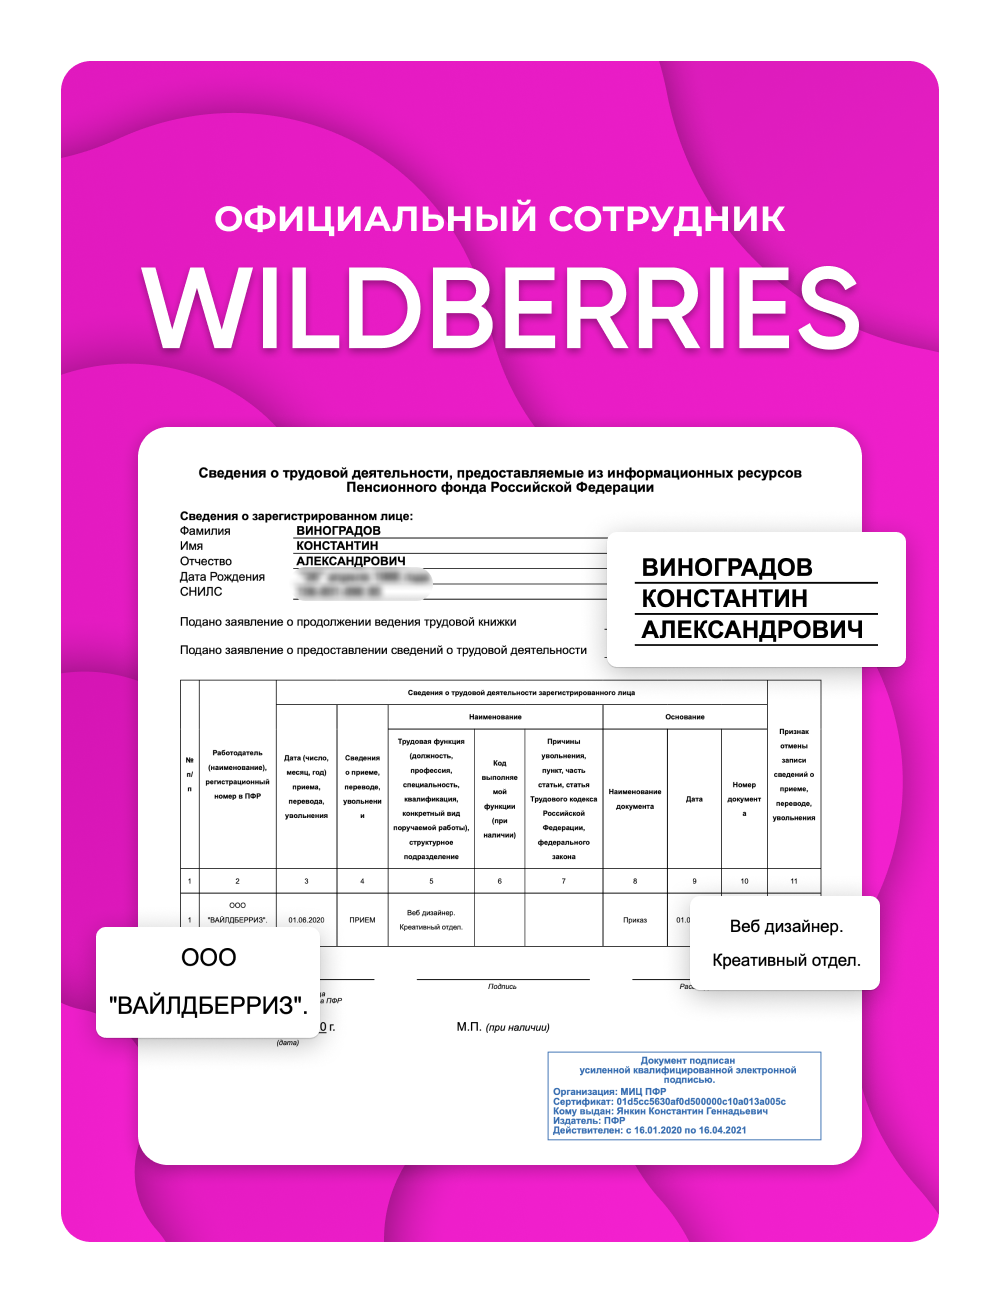 E-commerce №1 WILDBERRIES 🛍